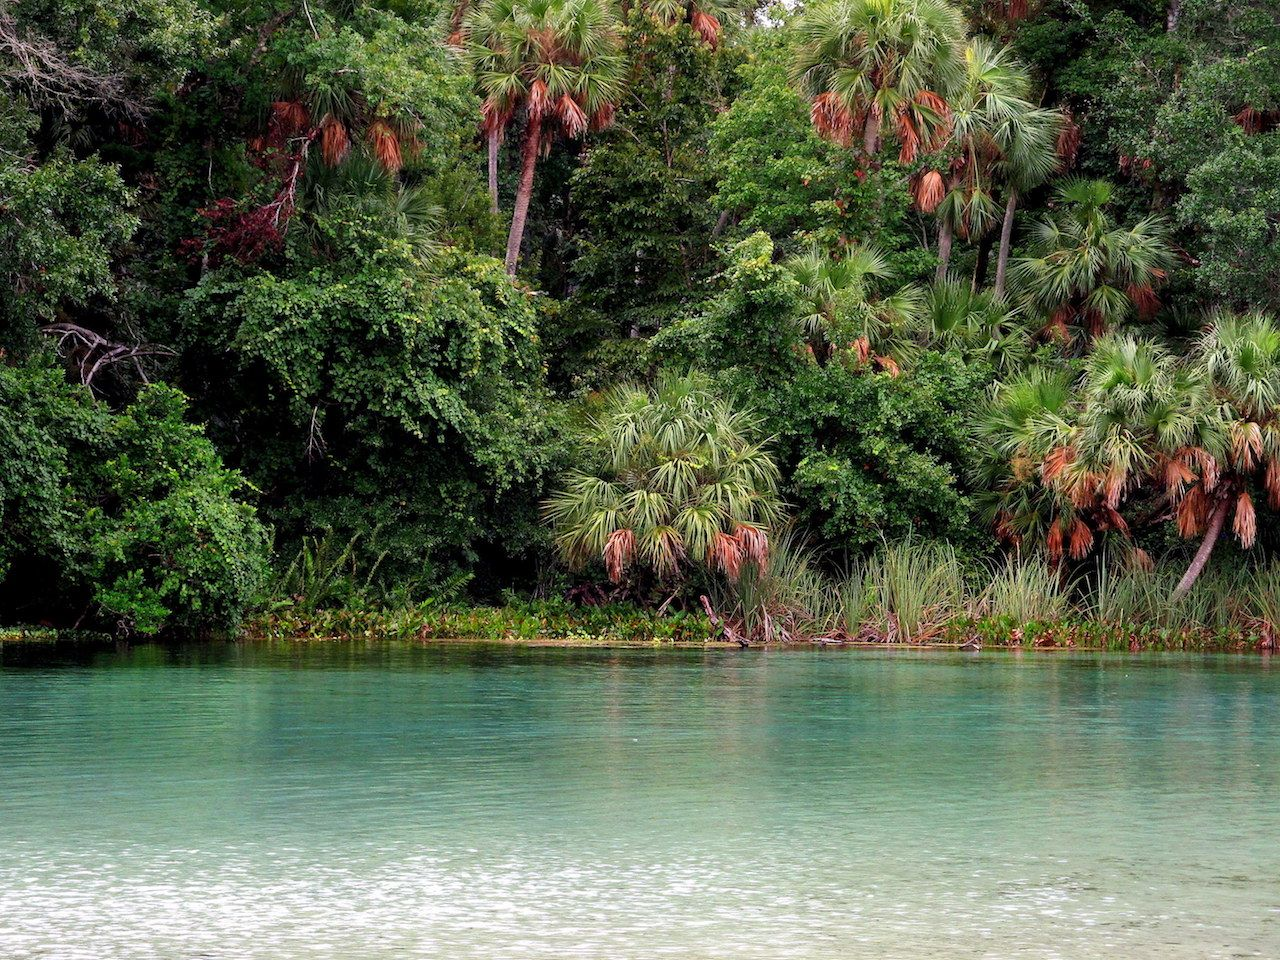 How To Hike The Florida National Scenic Trail